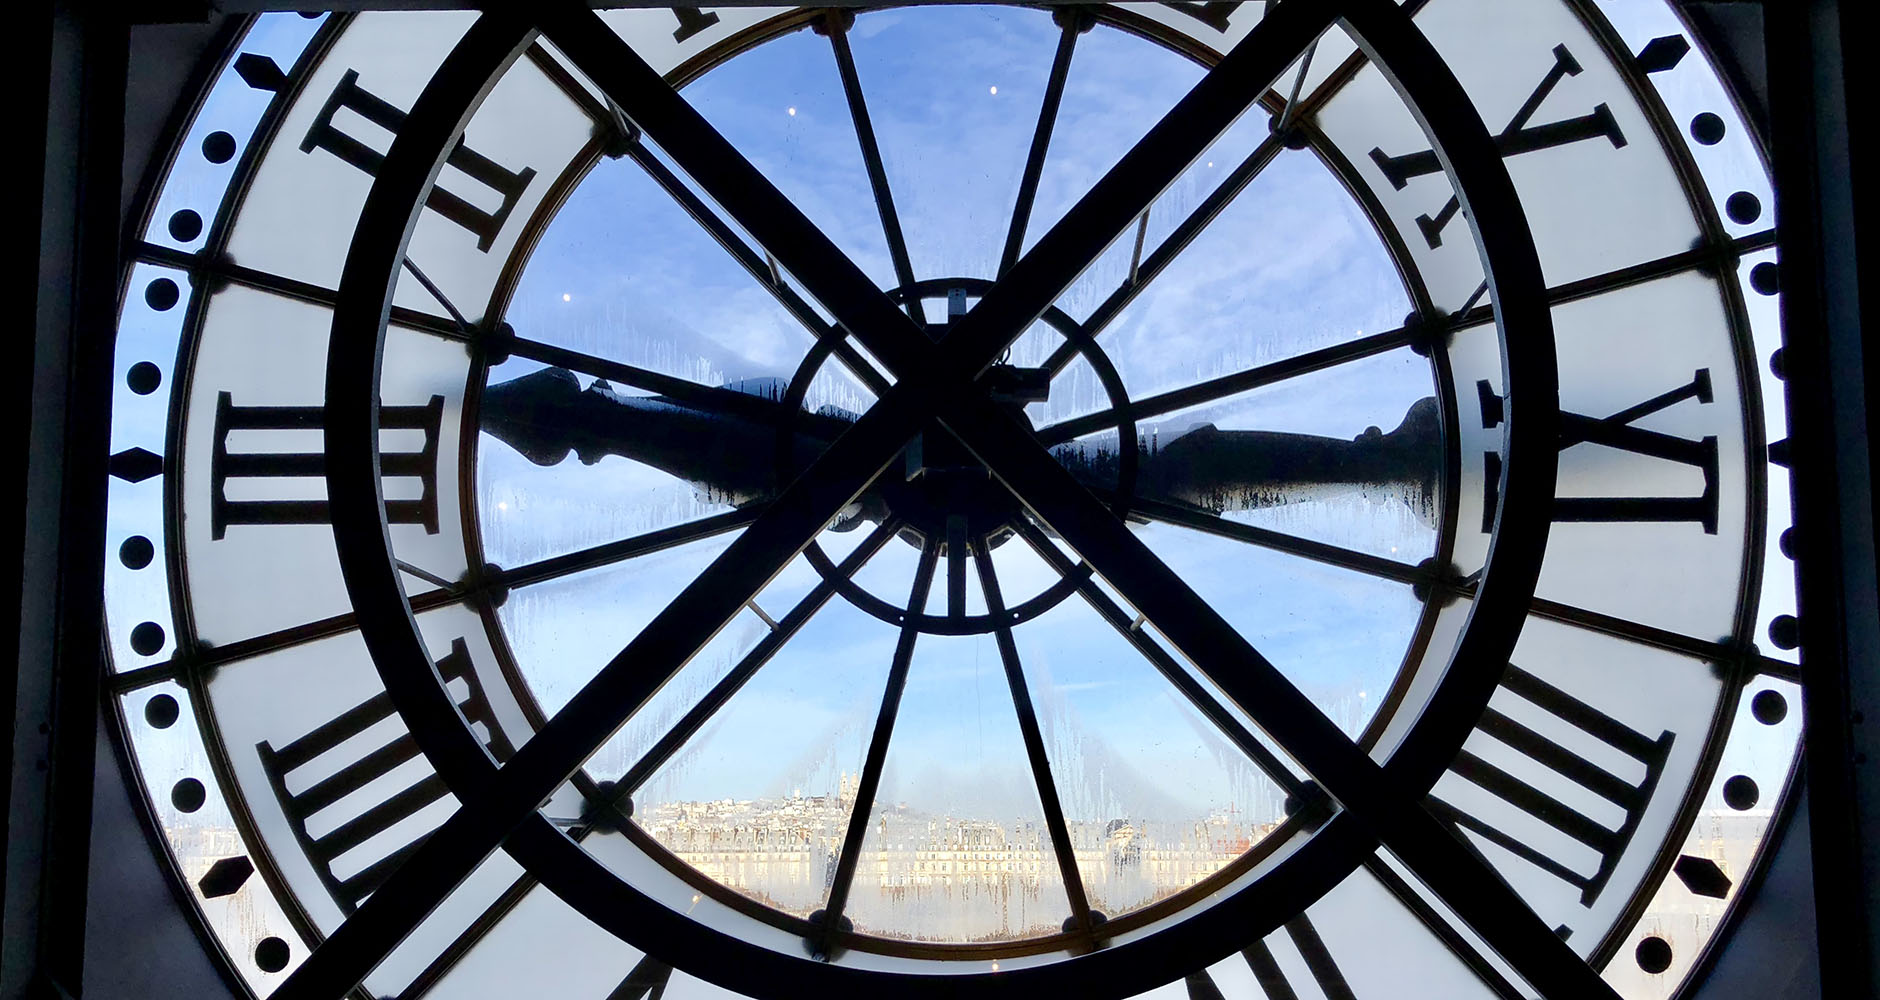 The clocktower in Musée D'Orsay